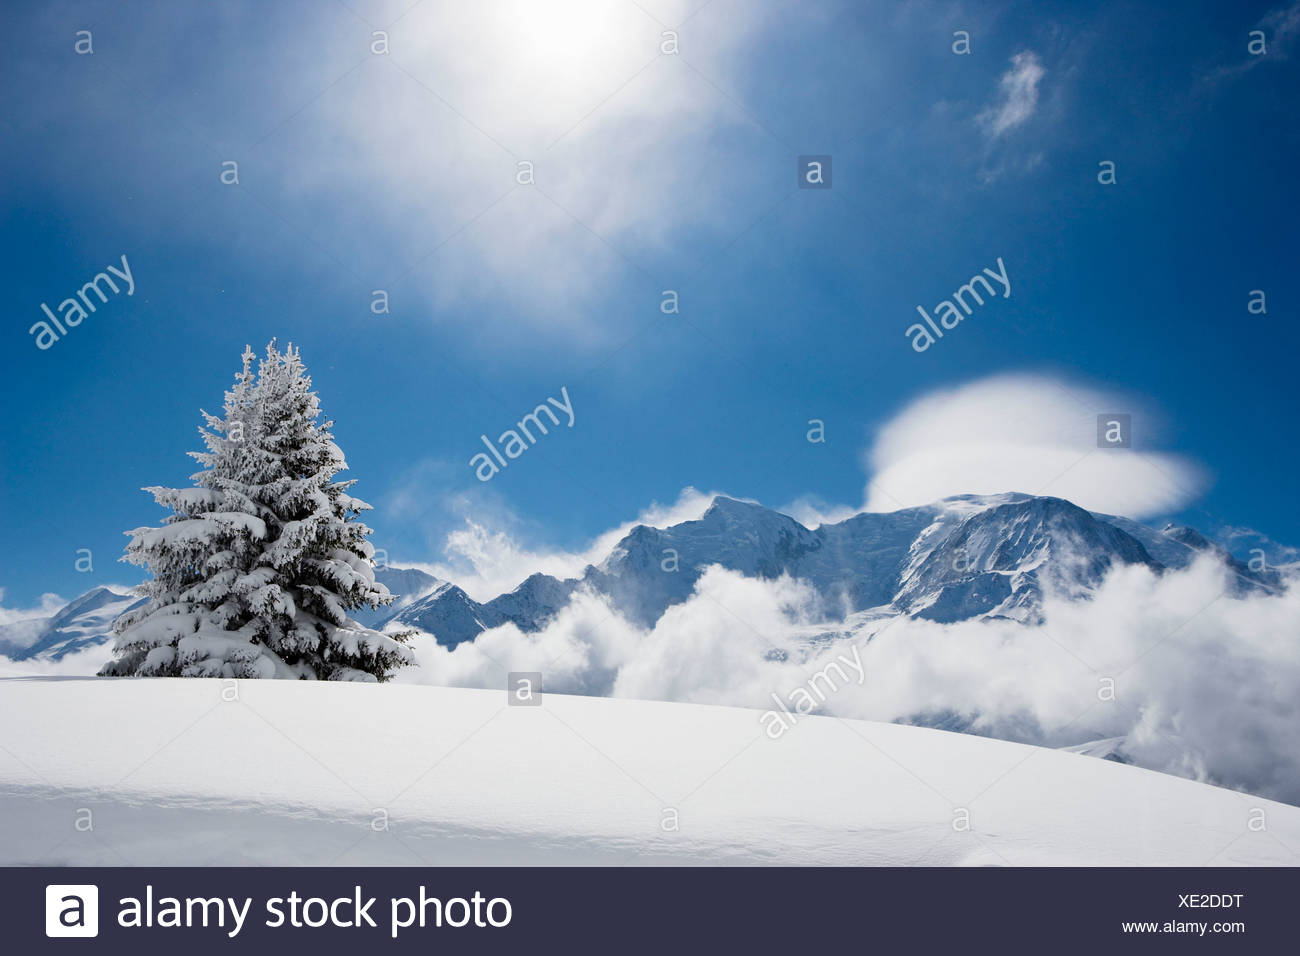 Fir tree covered in fresh snow - Stock Image